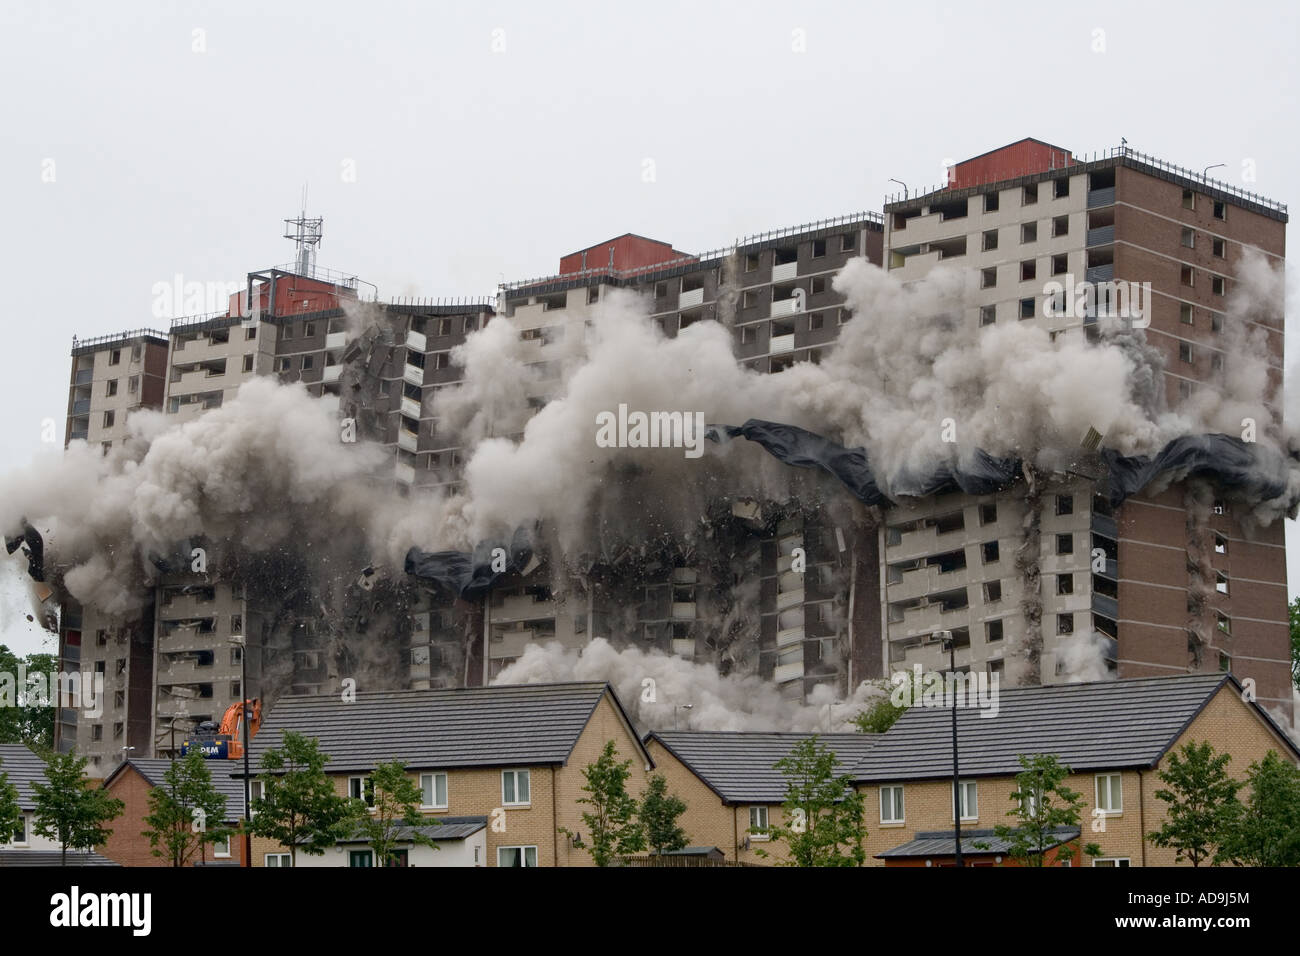 Clouds of dust engulf Ardler village after controlled explosions demolishing the last multi-storey building in Dundee, Stock Photo